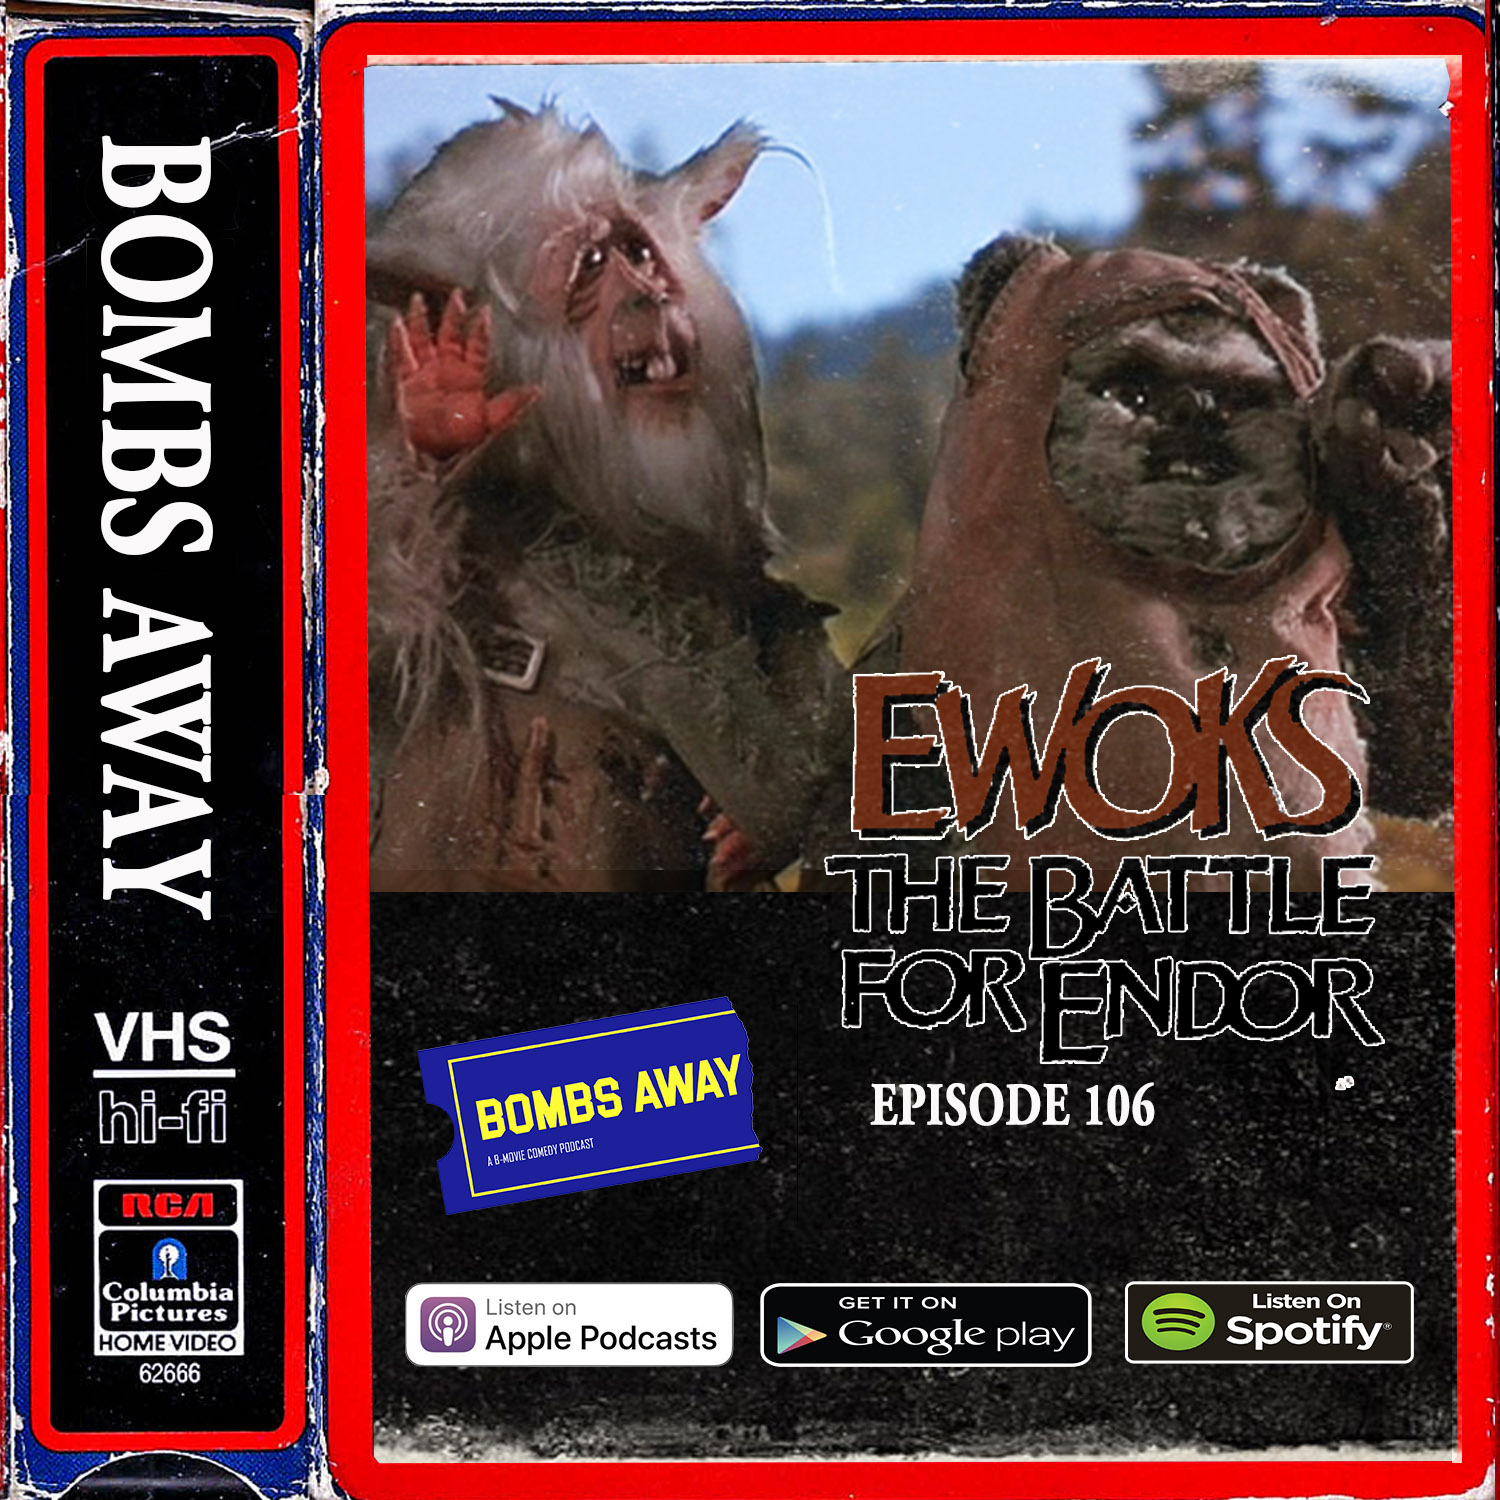 Episode 106 - Ewoks: The Battle for Endor (1985)